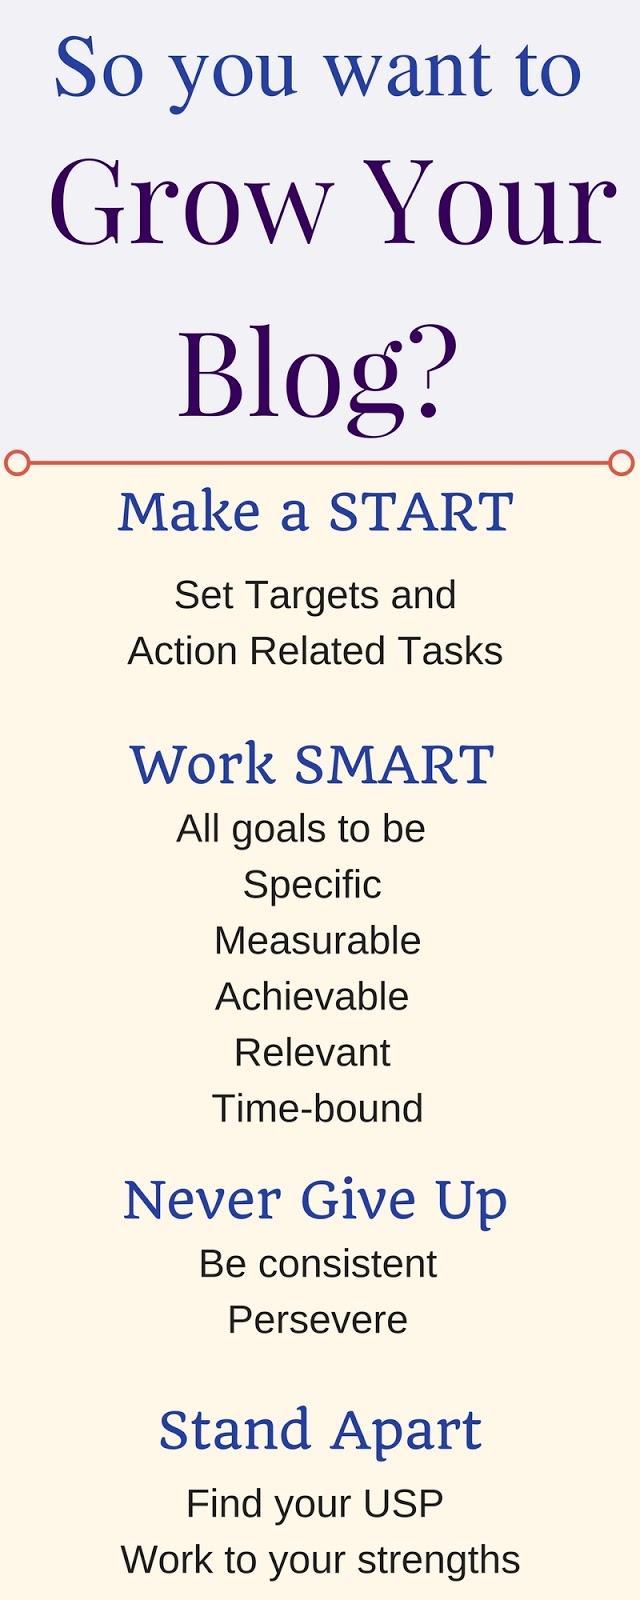 Make a START, Work SMART. Grow Your Blog